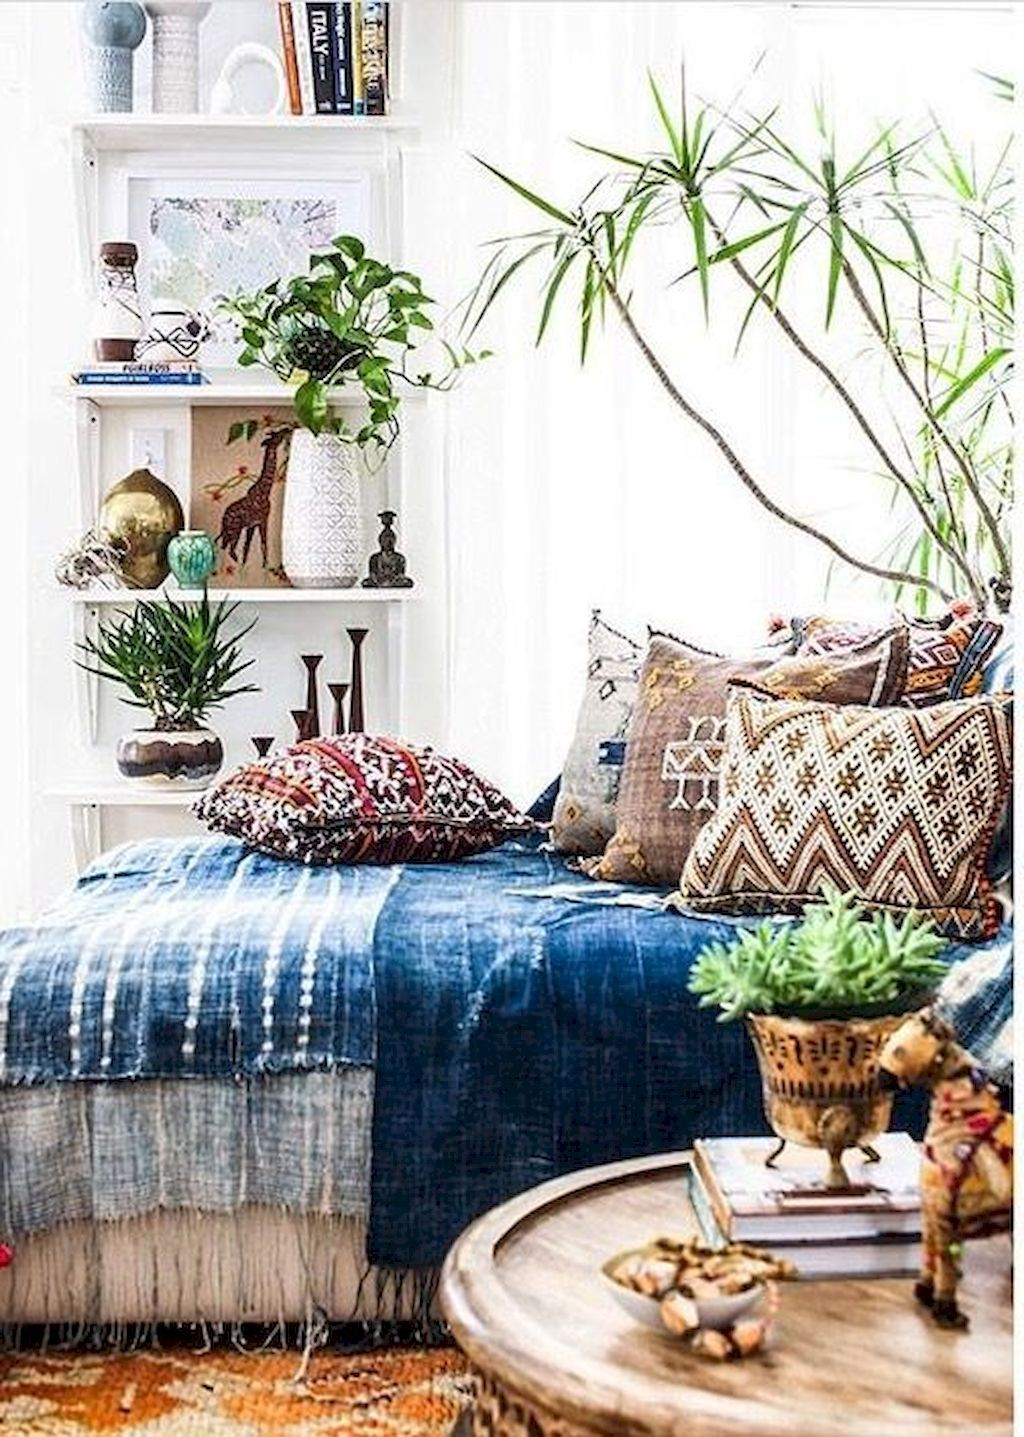 95 Gypsy Bohemian Master Bedroom Ideas #modernbohemianbedrooms